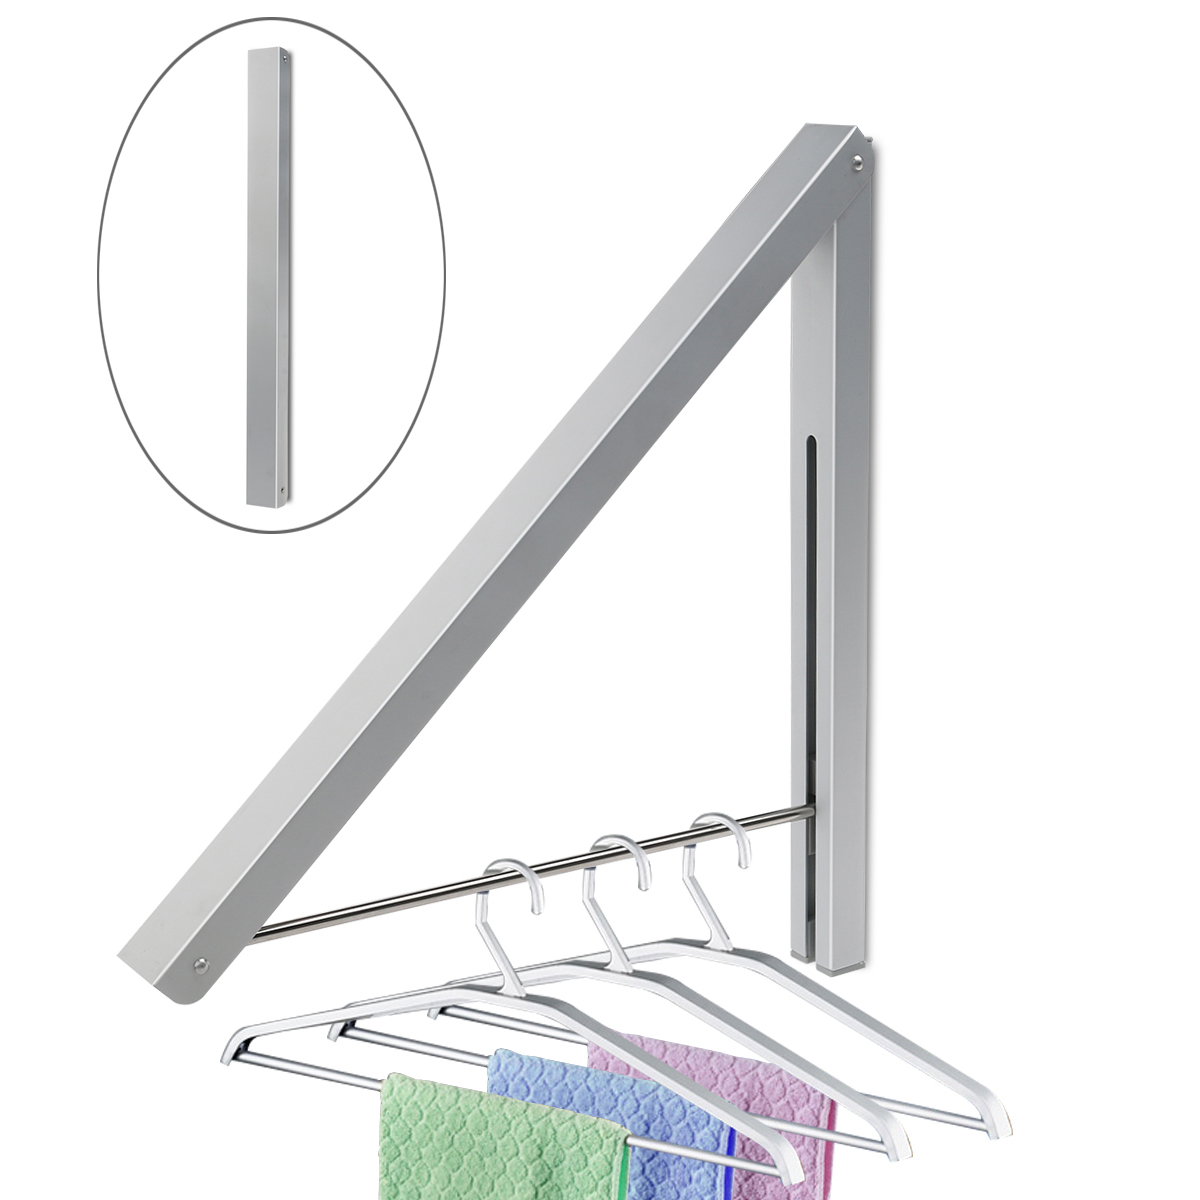 Adjustable Wall Shelf System Popular Clothes Hanger System Buy Cheap Clothes Hanger